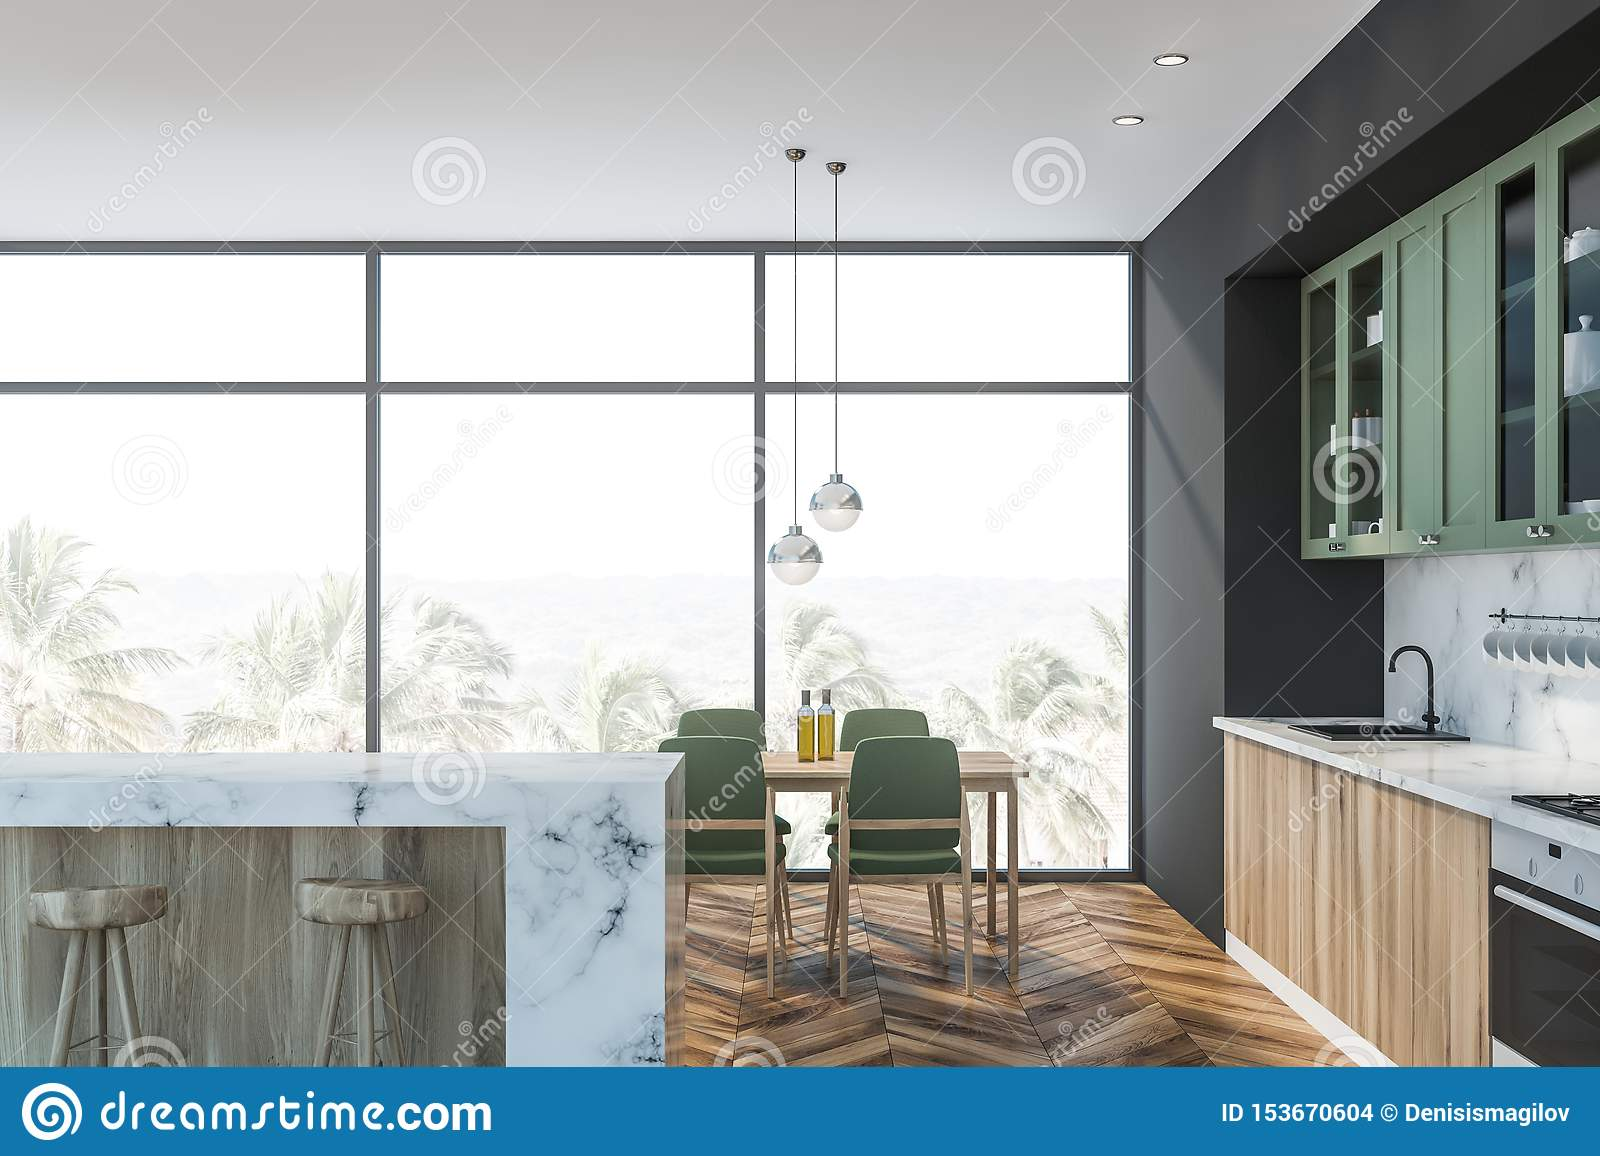 White Marble And Green Kitchen Bar And Table Stock Illustration Illustration Of Marble Kitchen 153670604